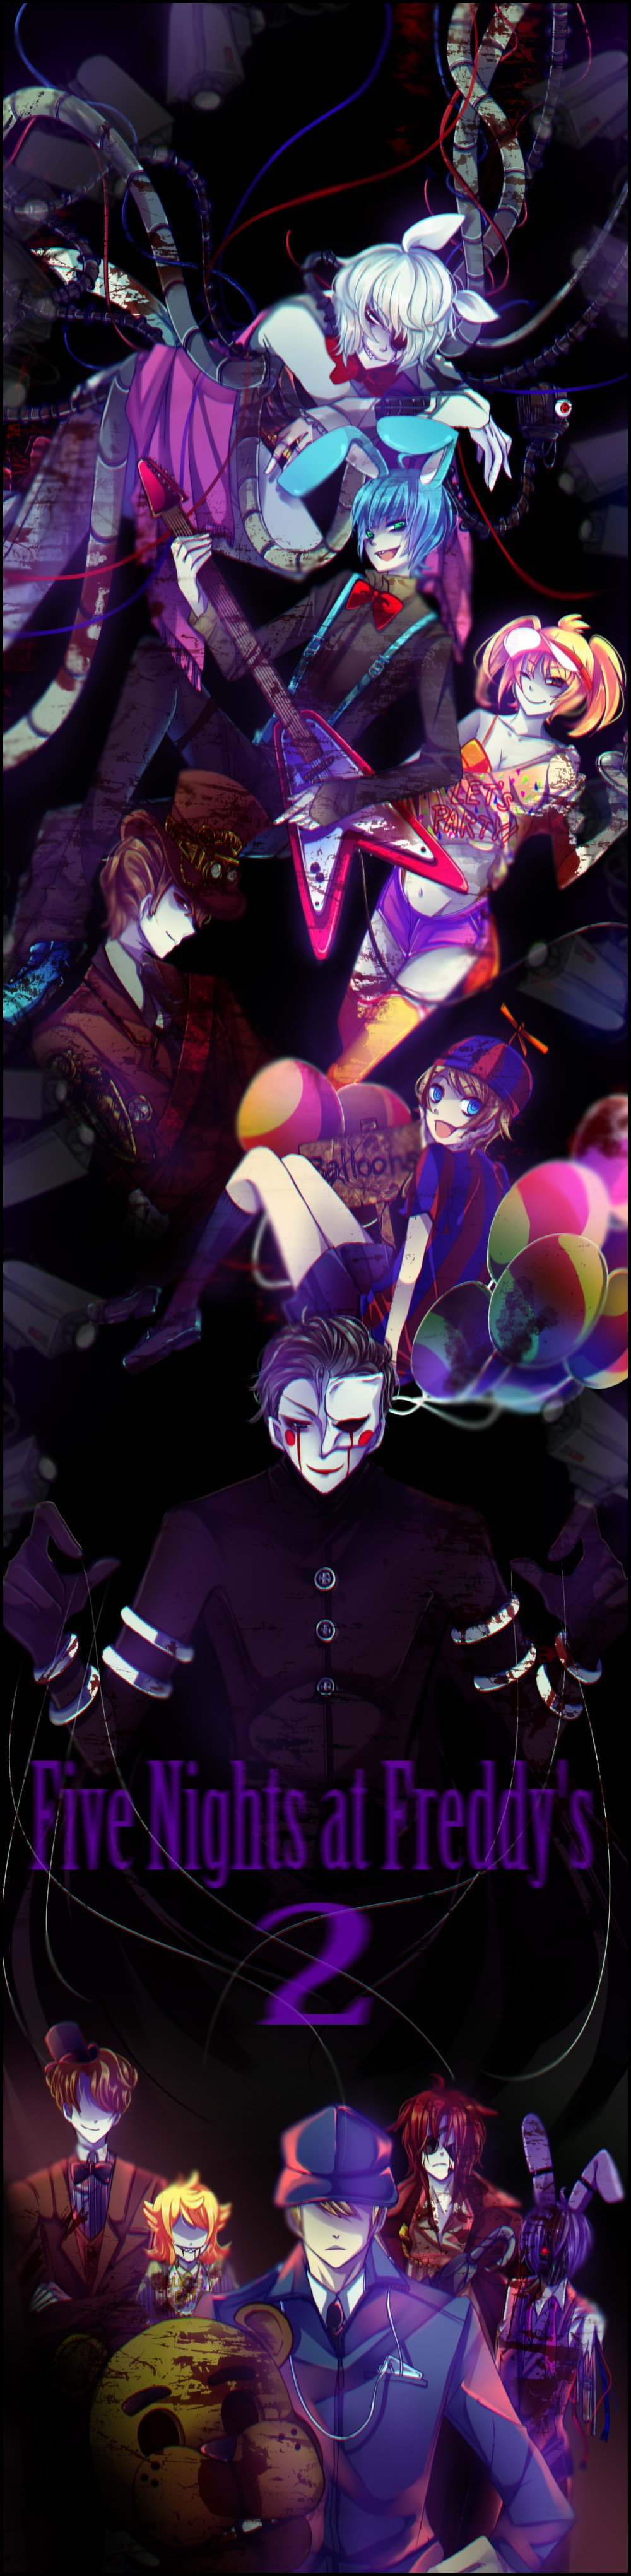 http://orig15.deviantart.net/33a5/f/2014/359/2/8/five_nights_at_freddy_s2_by_gatanii69-d8b5rb0.jpg